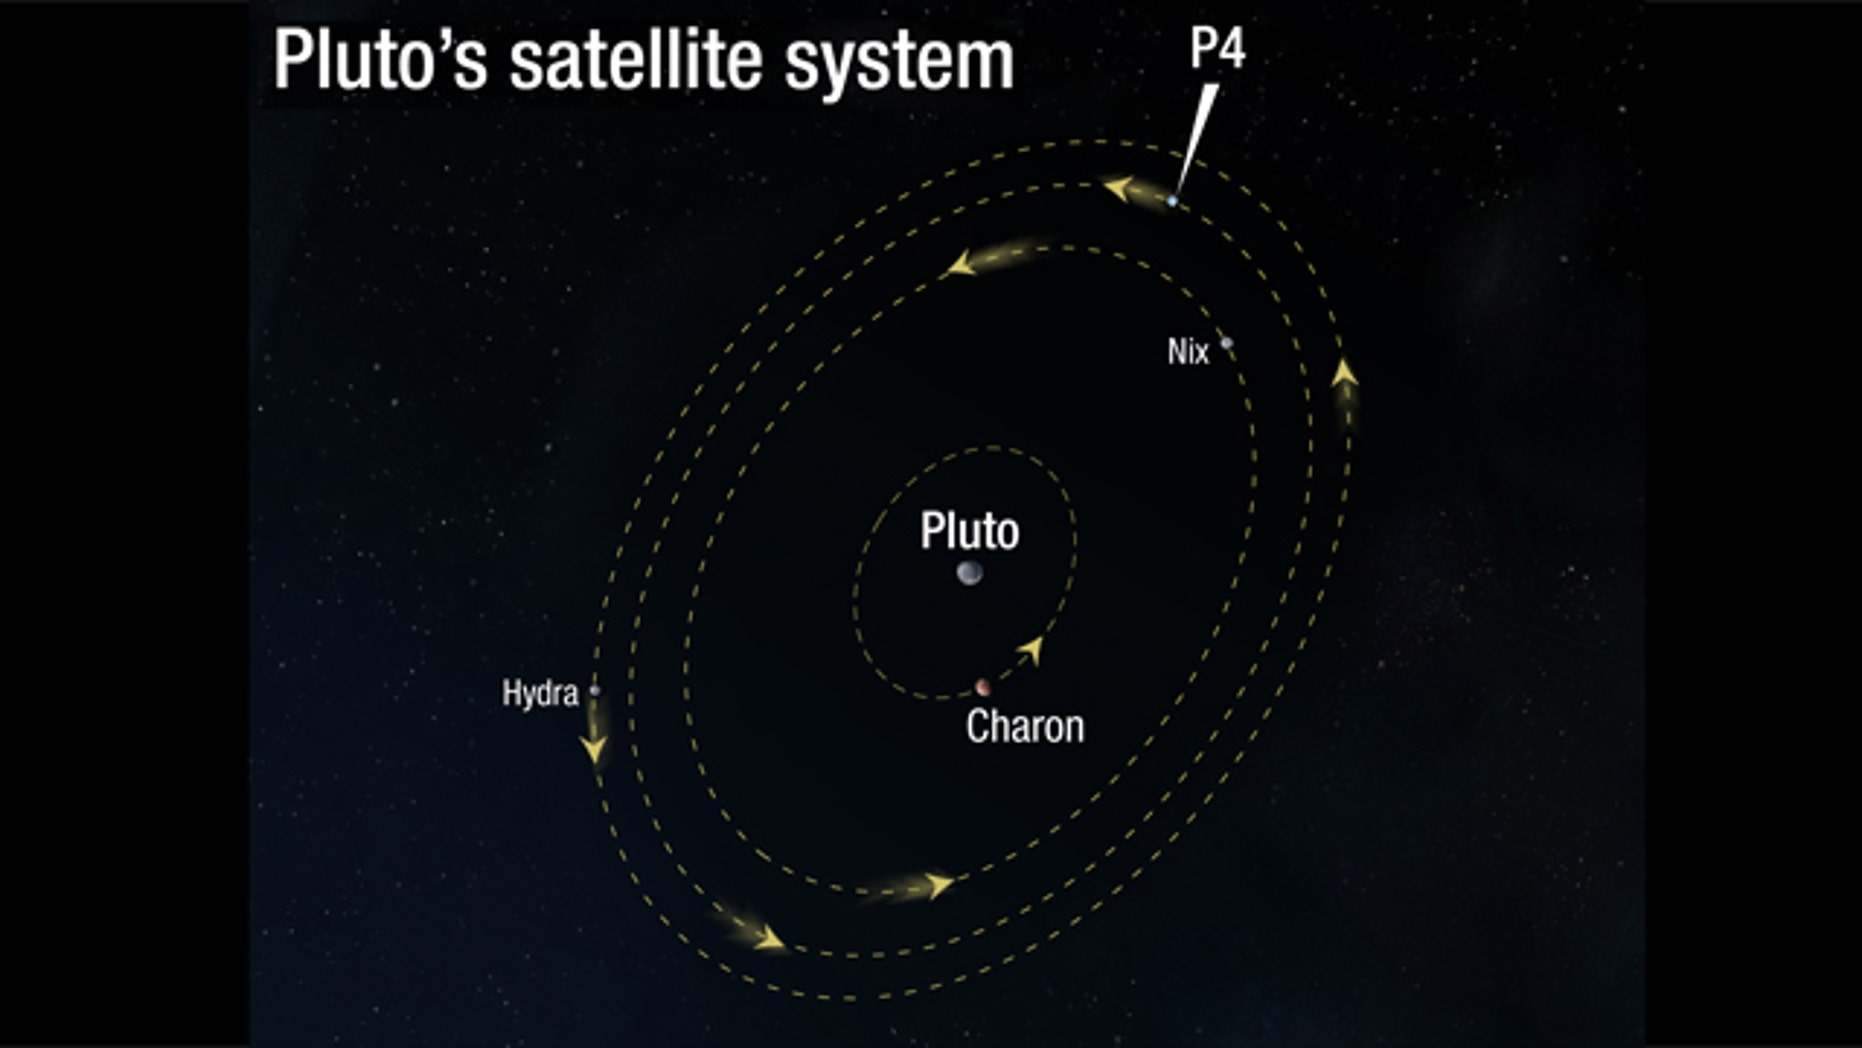 Illustration of the Pluto Satellite System orbits with newly discovered moon P4 highlighted.